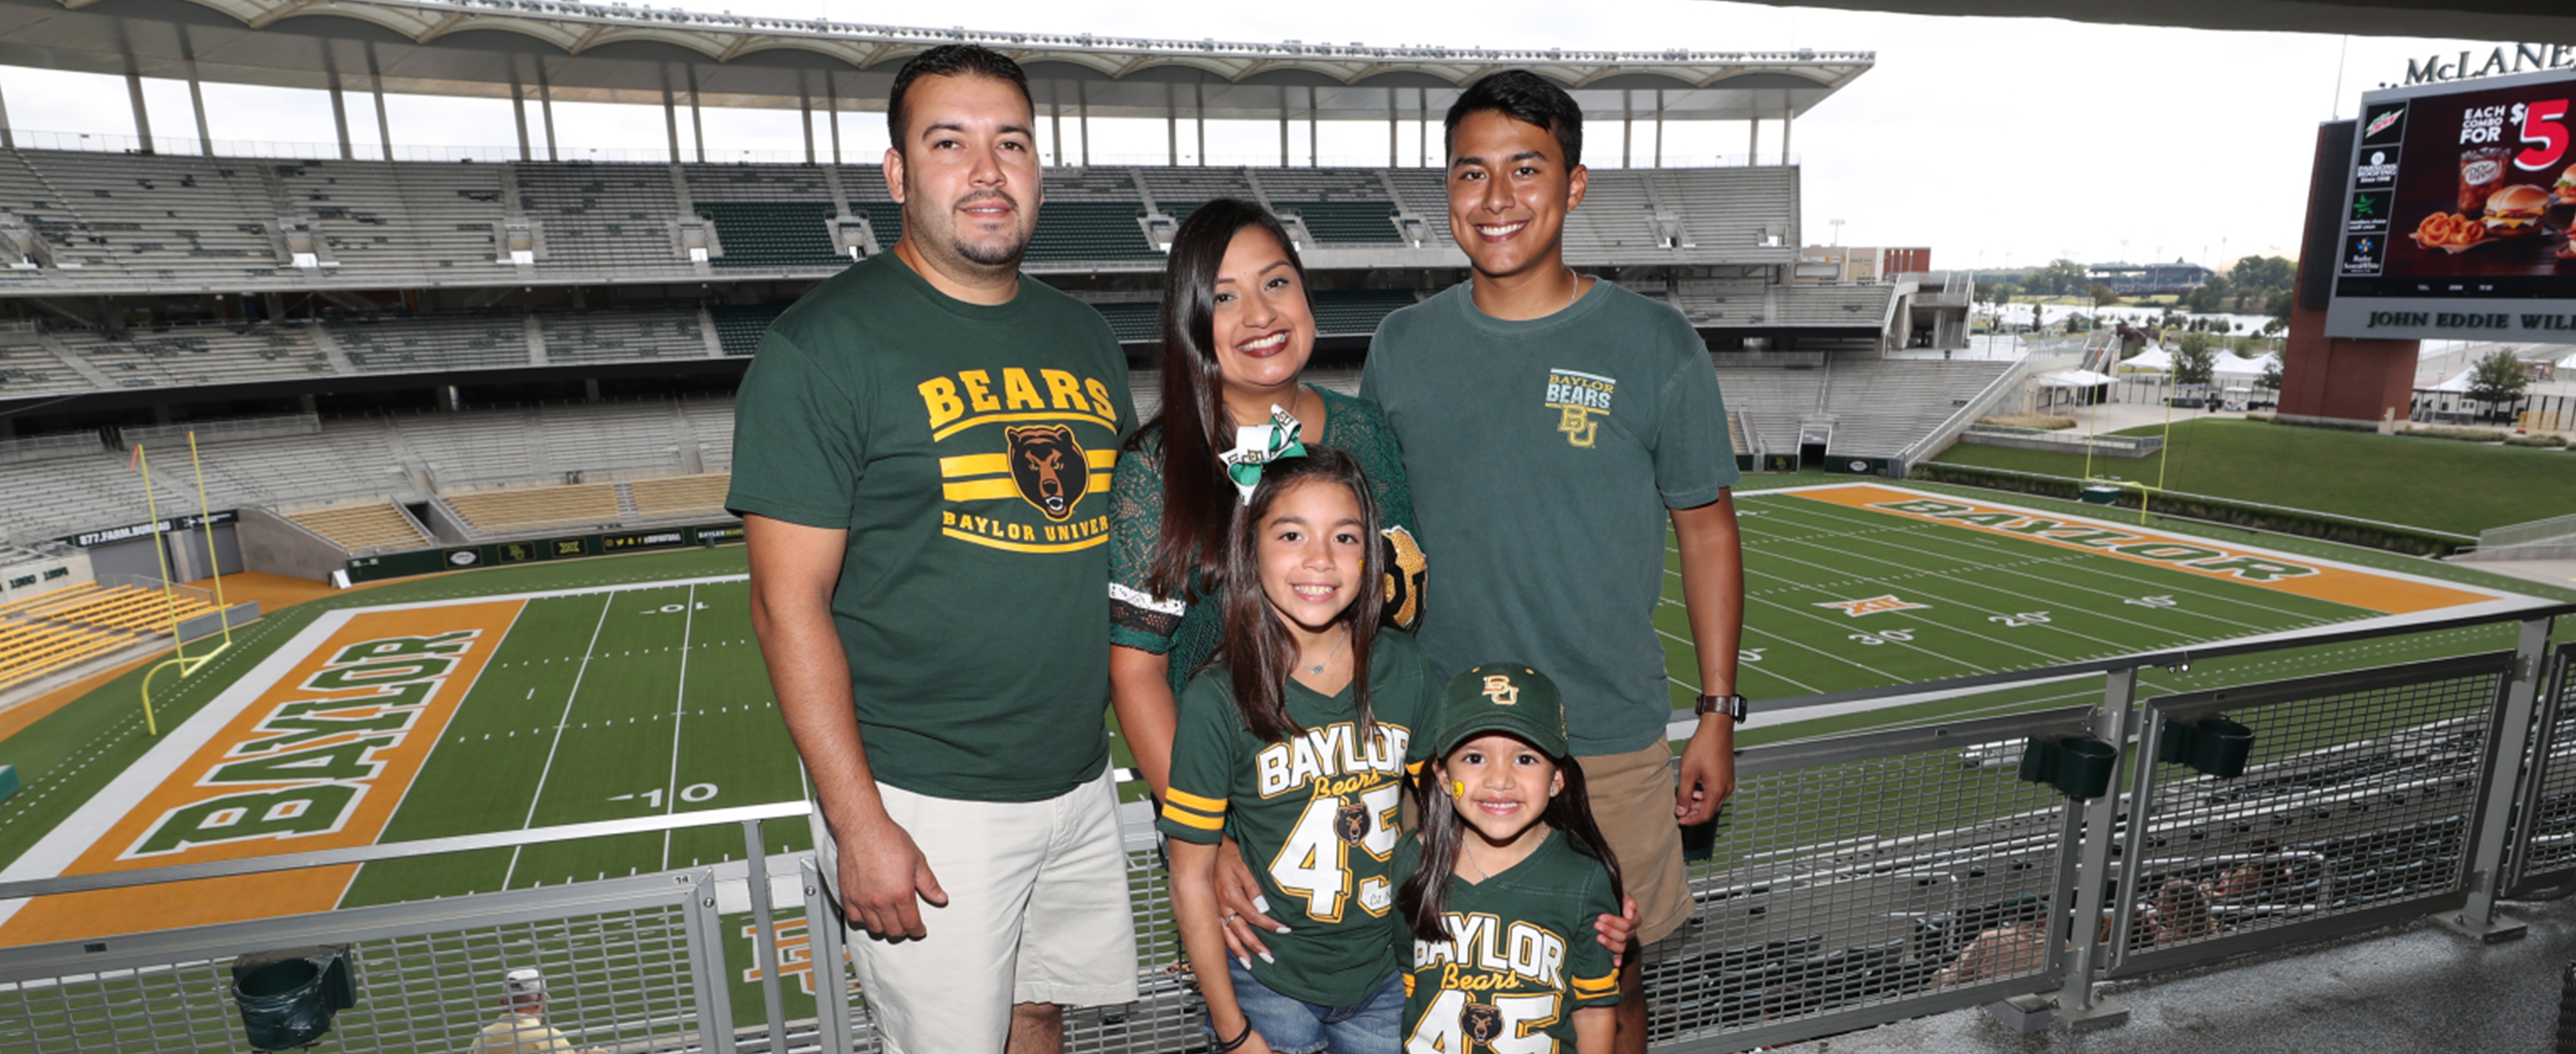 Baylor Bears at the Stadium